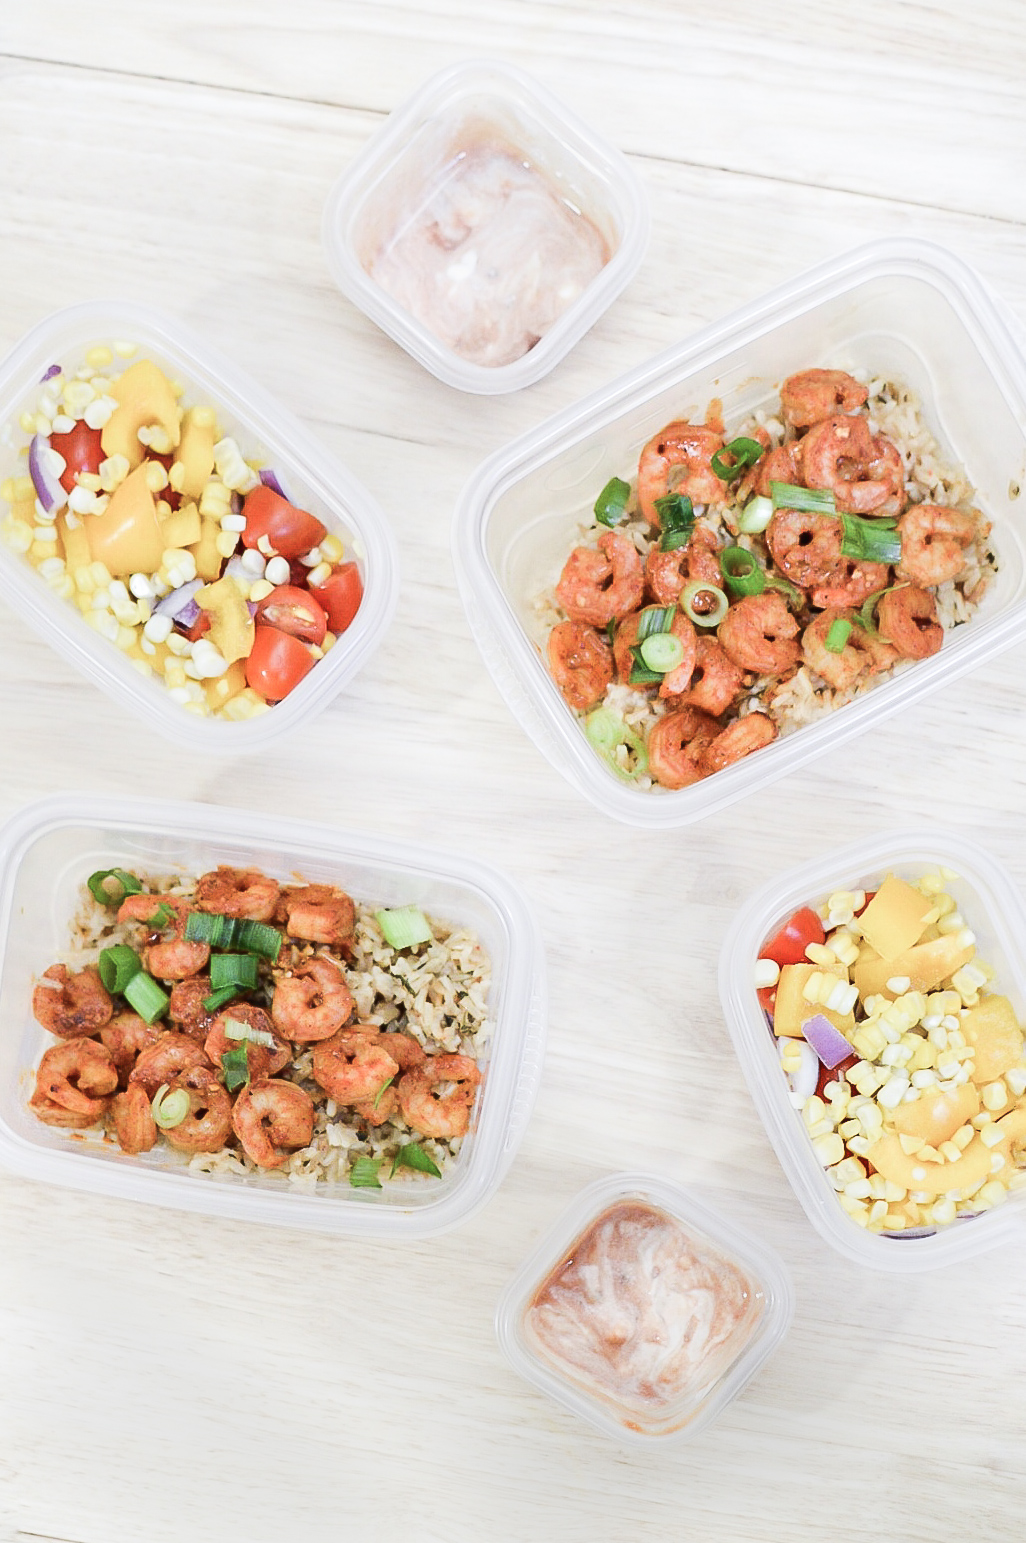 Chili Lime Shrimp Burrito Bowls